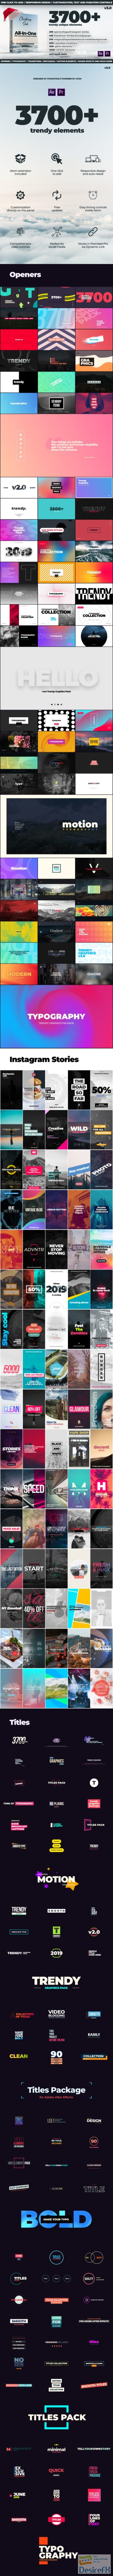 Videohive TG // 3700+ Trendy Motion Graphics Package 24321544 - V3